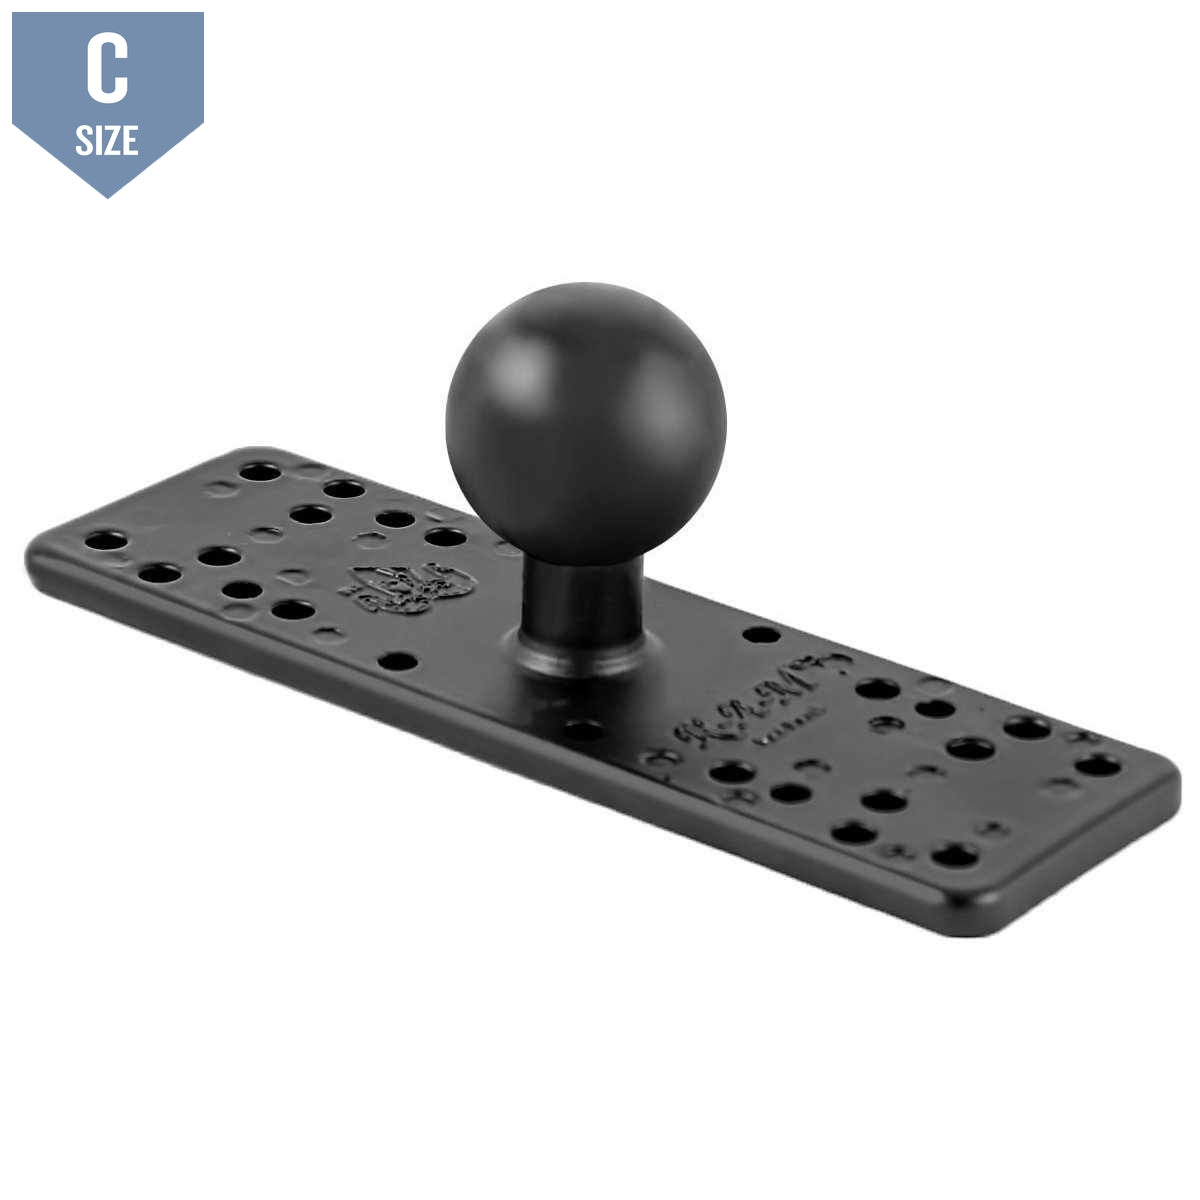 "RAM 6.25"" x 2"" Universal Electronics Base with 1.5"" Ball (RAM-111BU) - Modest Mounts"